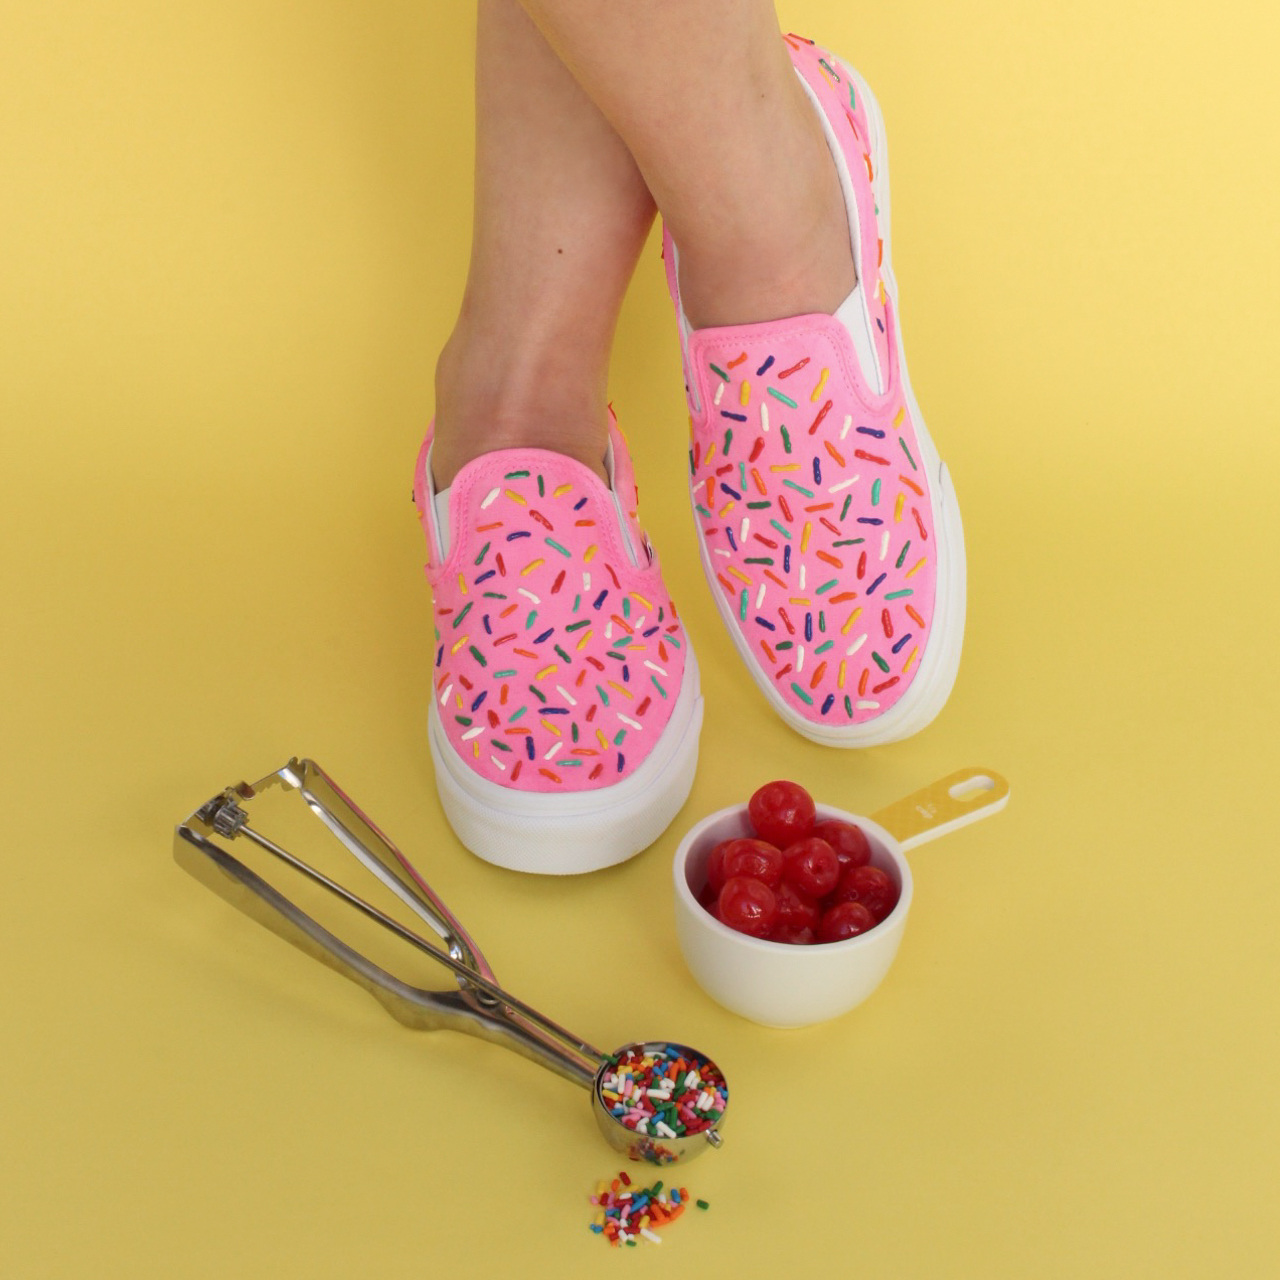 Crafterward icecreamshoes styled2